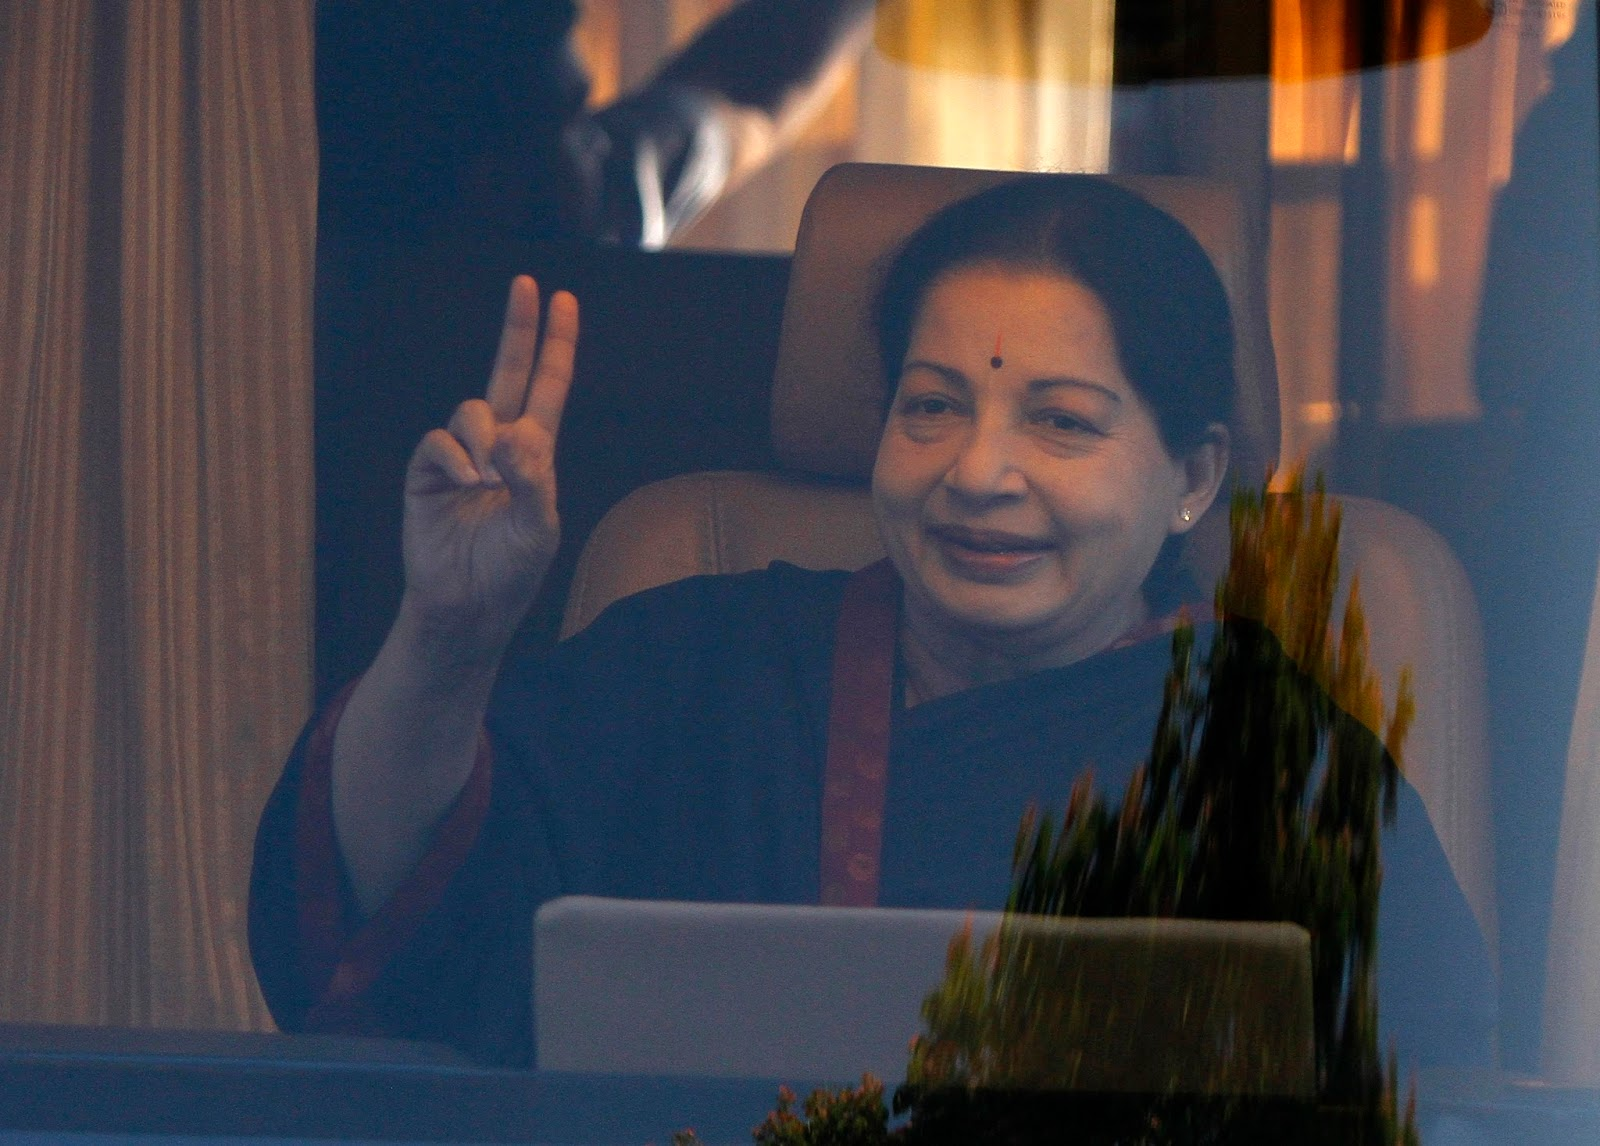 Latest update on CM Jayalalitha's condition from Apollo sources